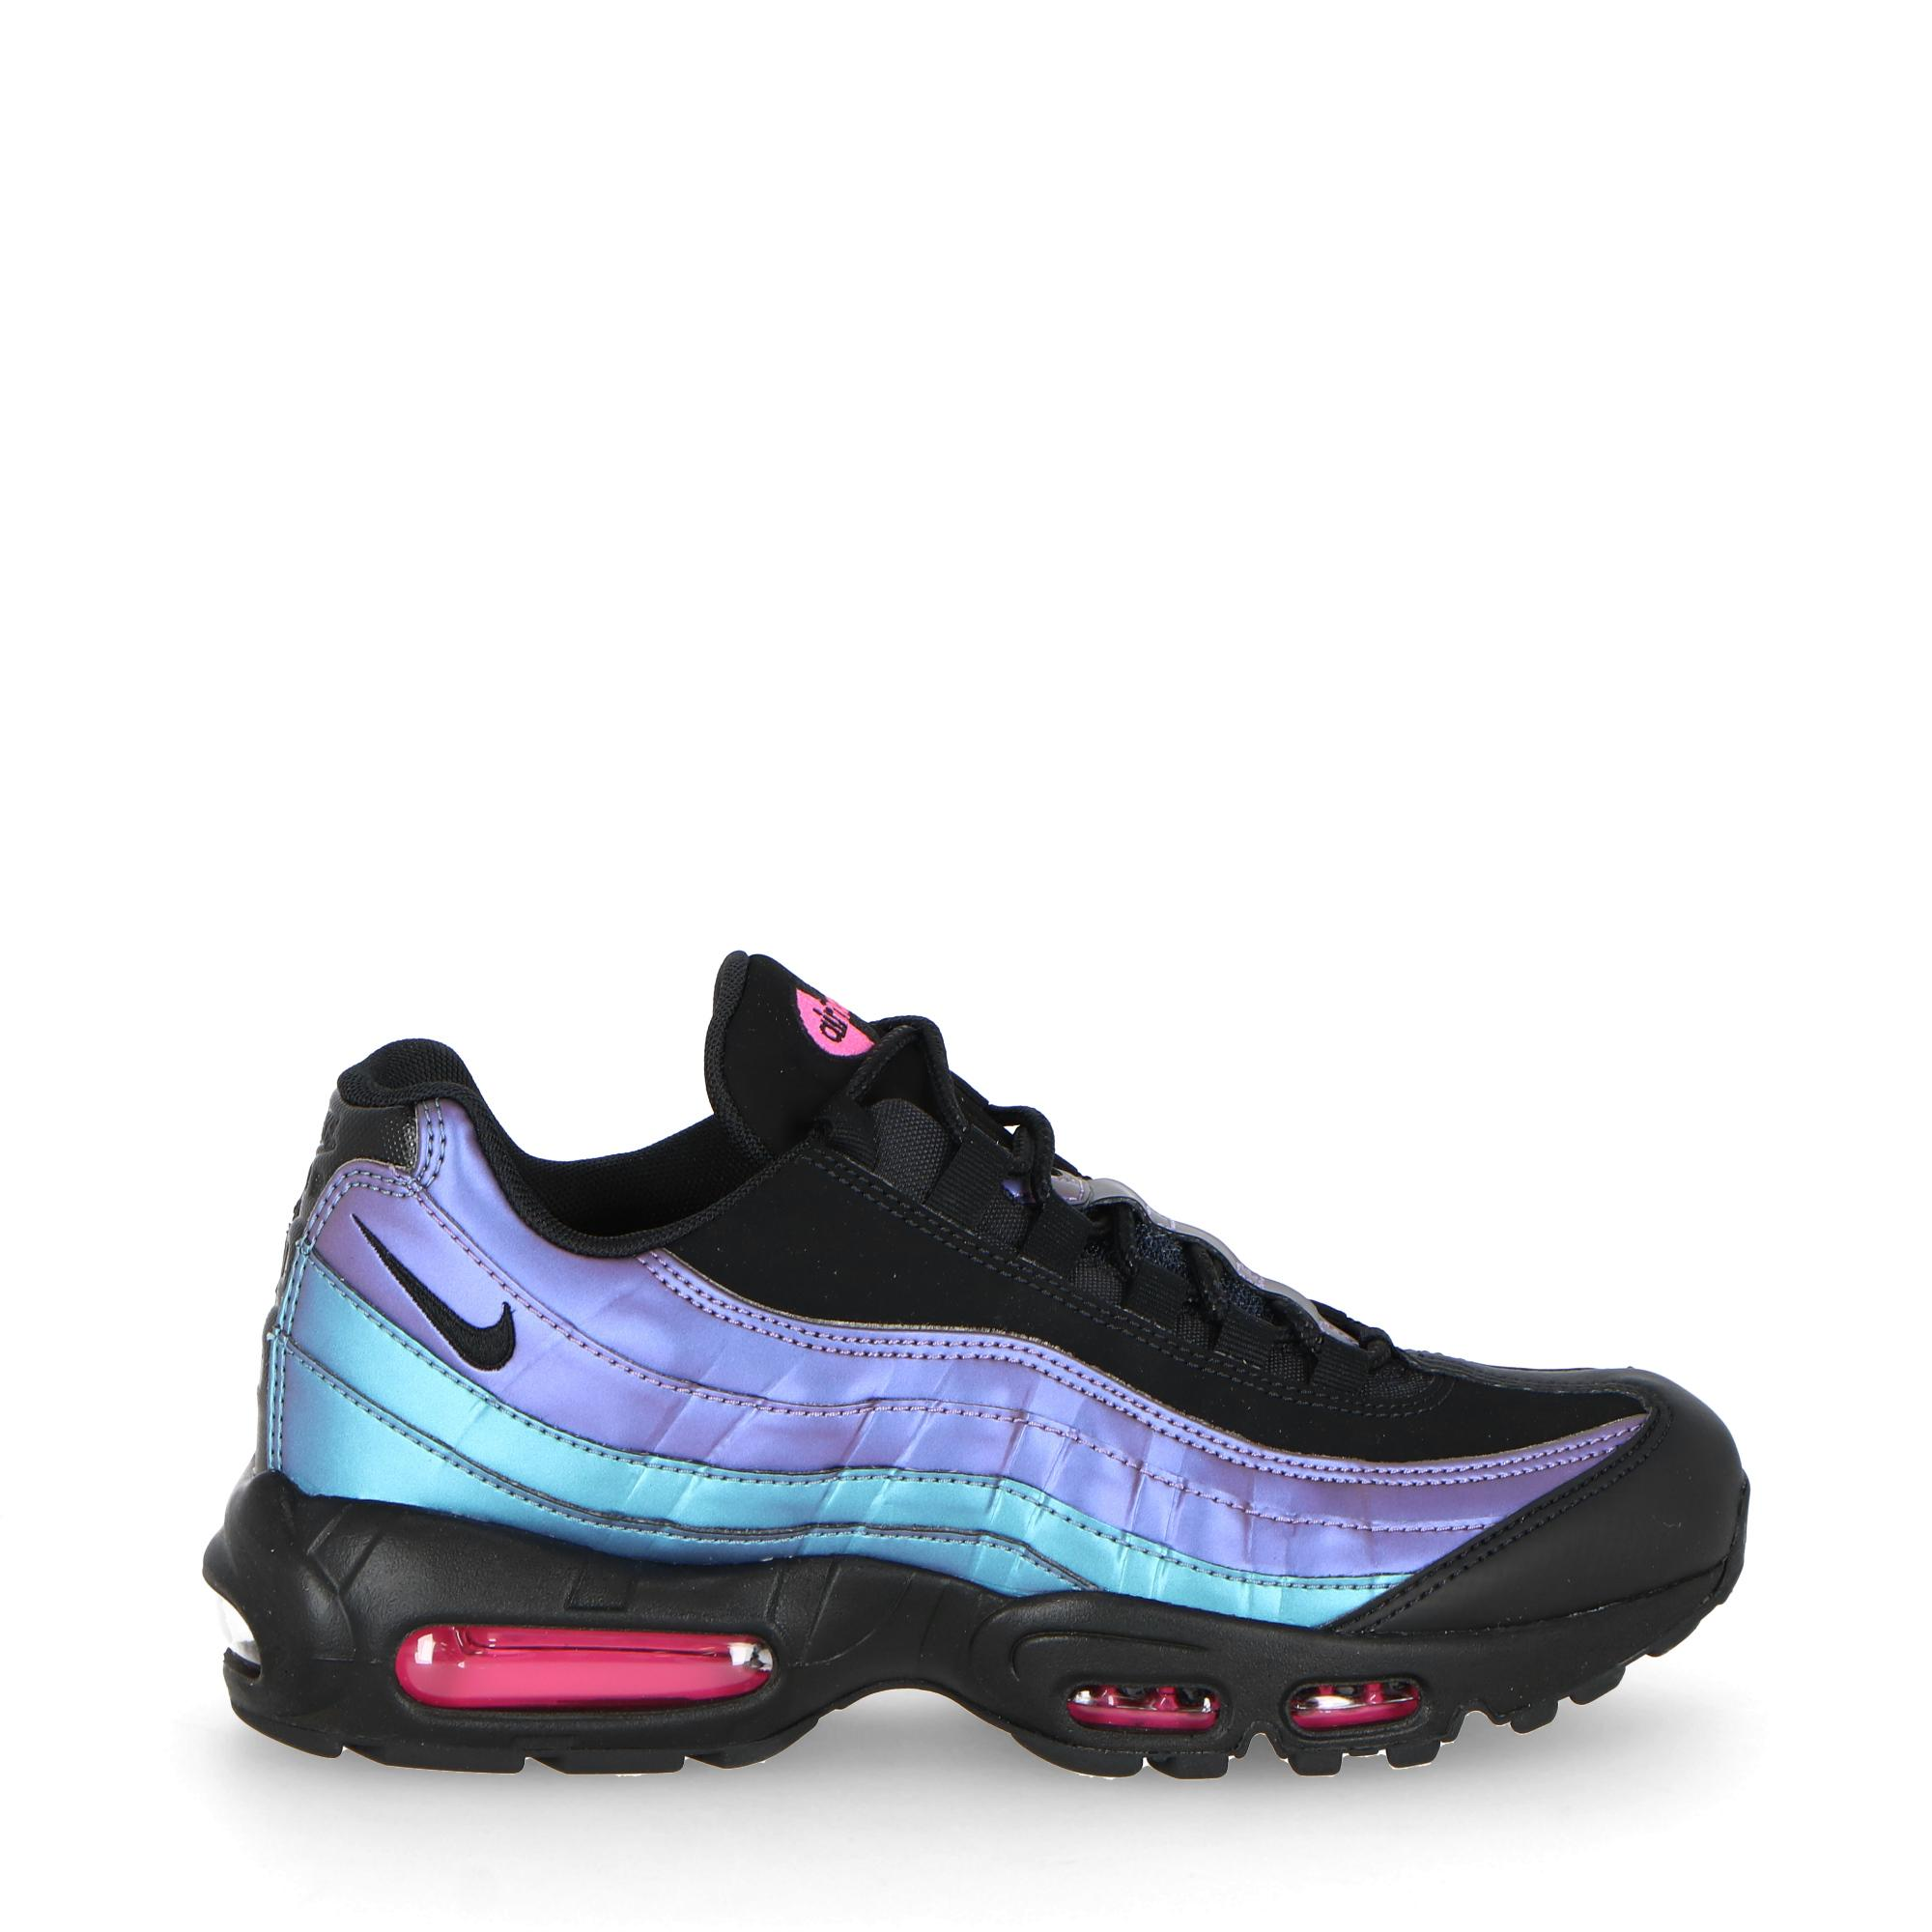 separation shoes 2f039 ef5a2 NIKE AIR MAX 95 PREMIUM